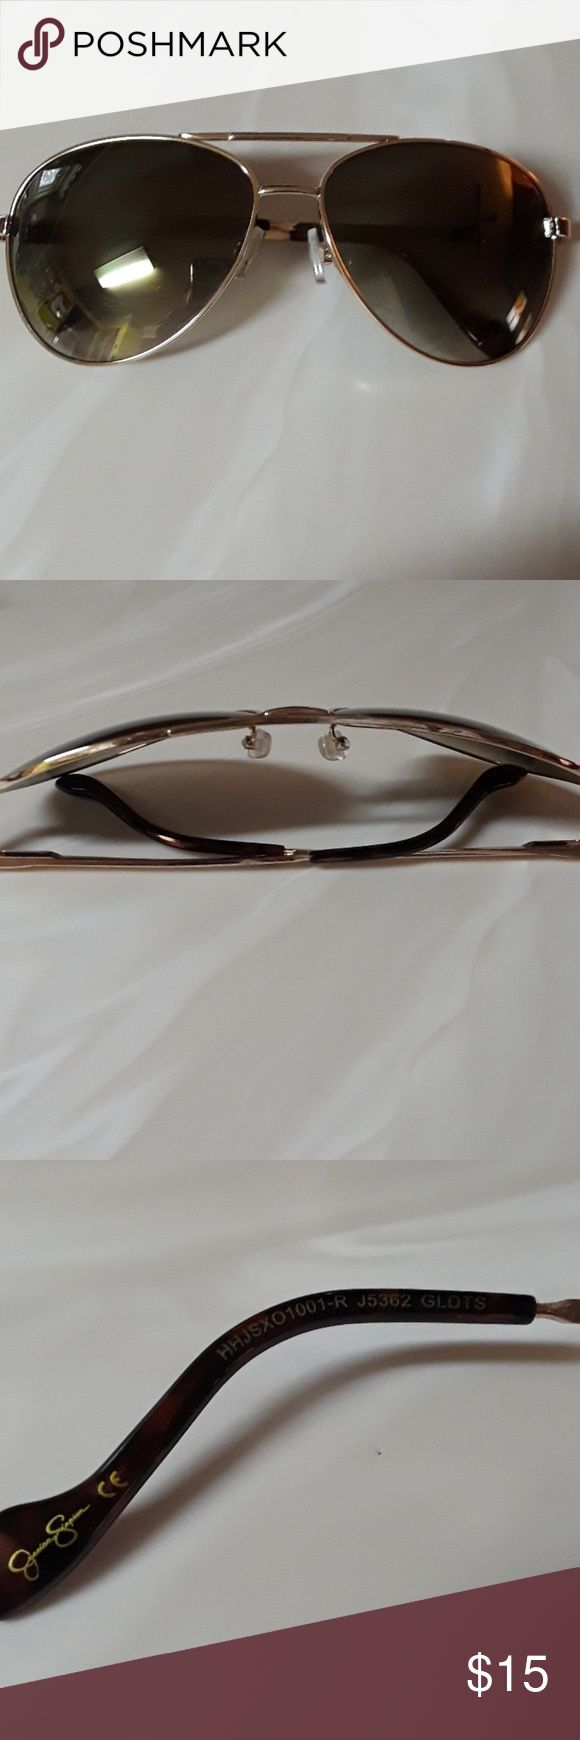 Jessica Simpson Gold Aviator Sunglasses In great conditon, there are very minor scratches on the lens which is hard to notice  when wearing. No glasses case.  J5362 Glots Jessica Simpson Accessories Sunglasses